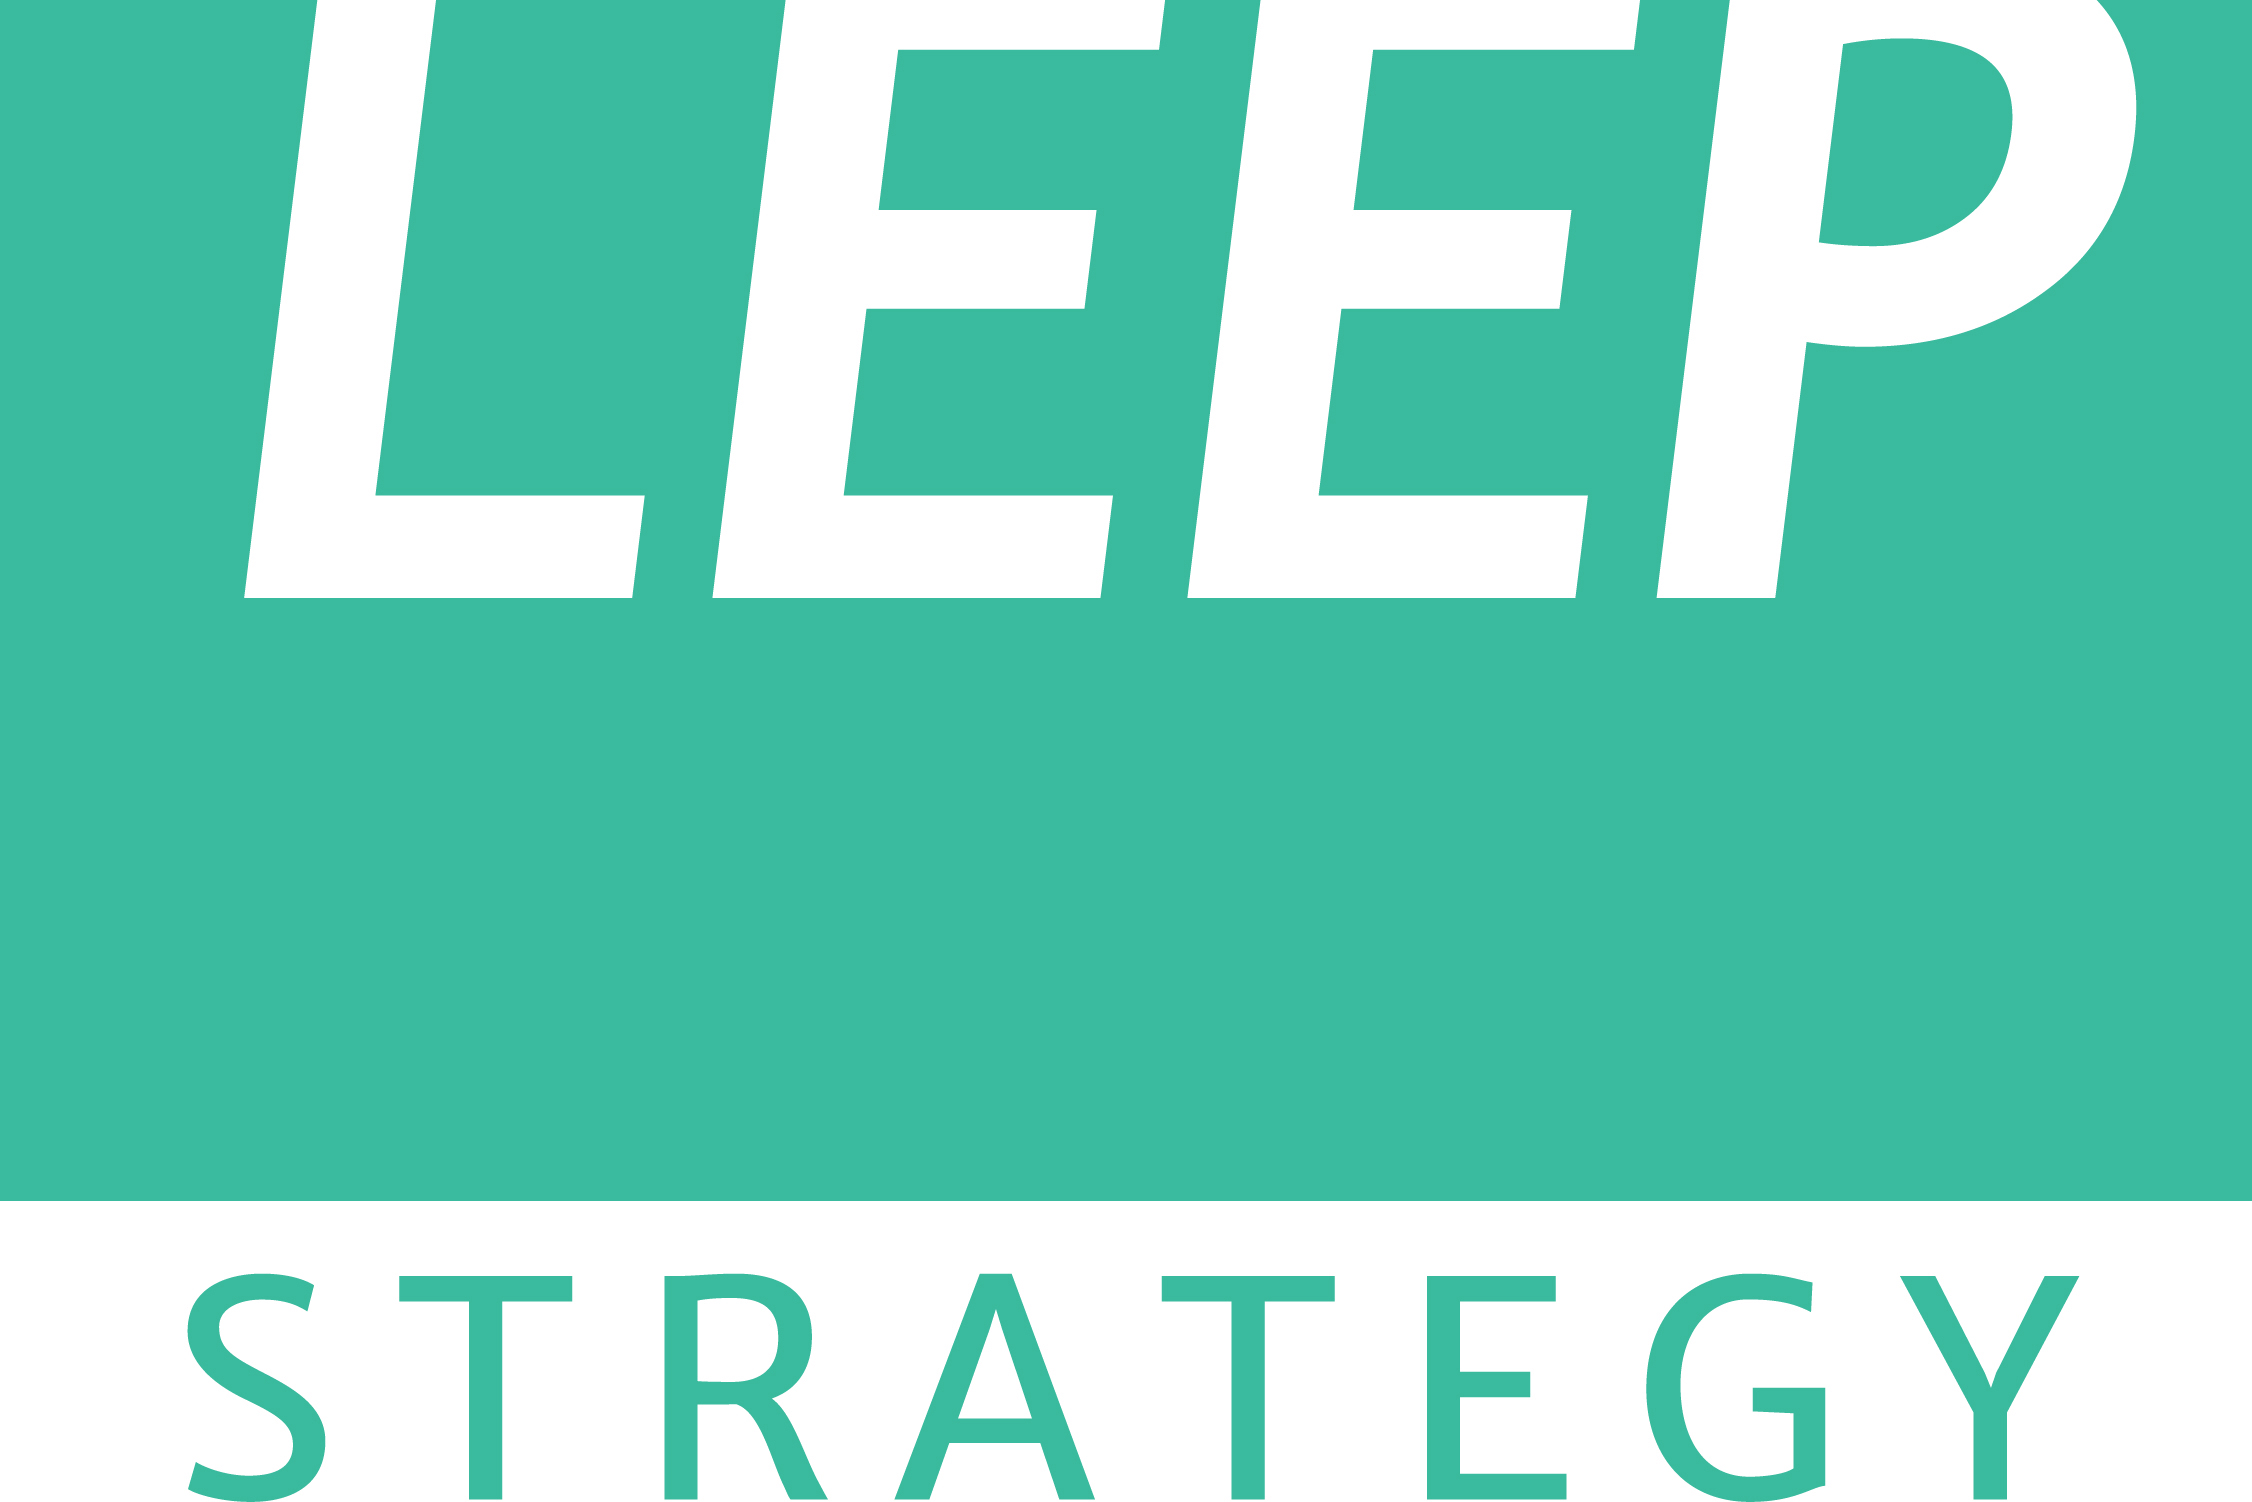 LEEP is led by Patricia Jurca, who creates solutions-focused teams from her network of experts. This network includes expertise in branding and strategy, graphic design, industrial design, architecture, interior design, finance, consumer behavior, UX/UI, and organizational behavior.